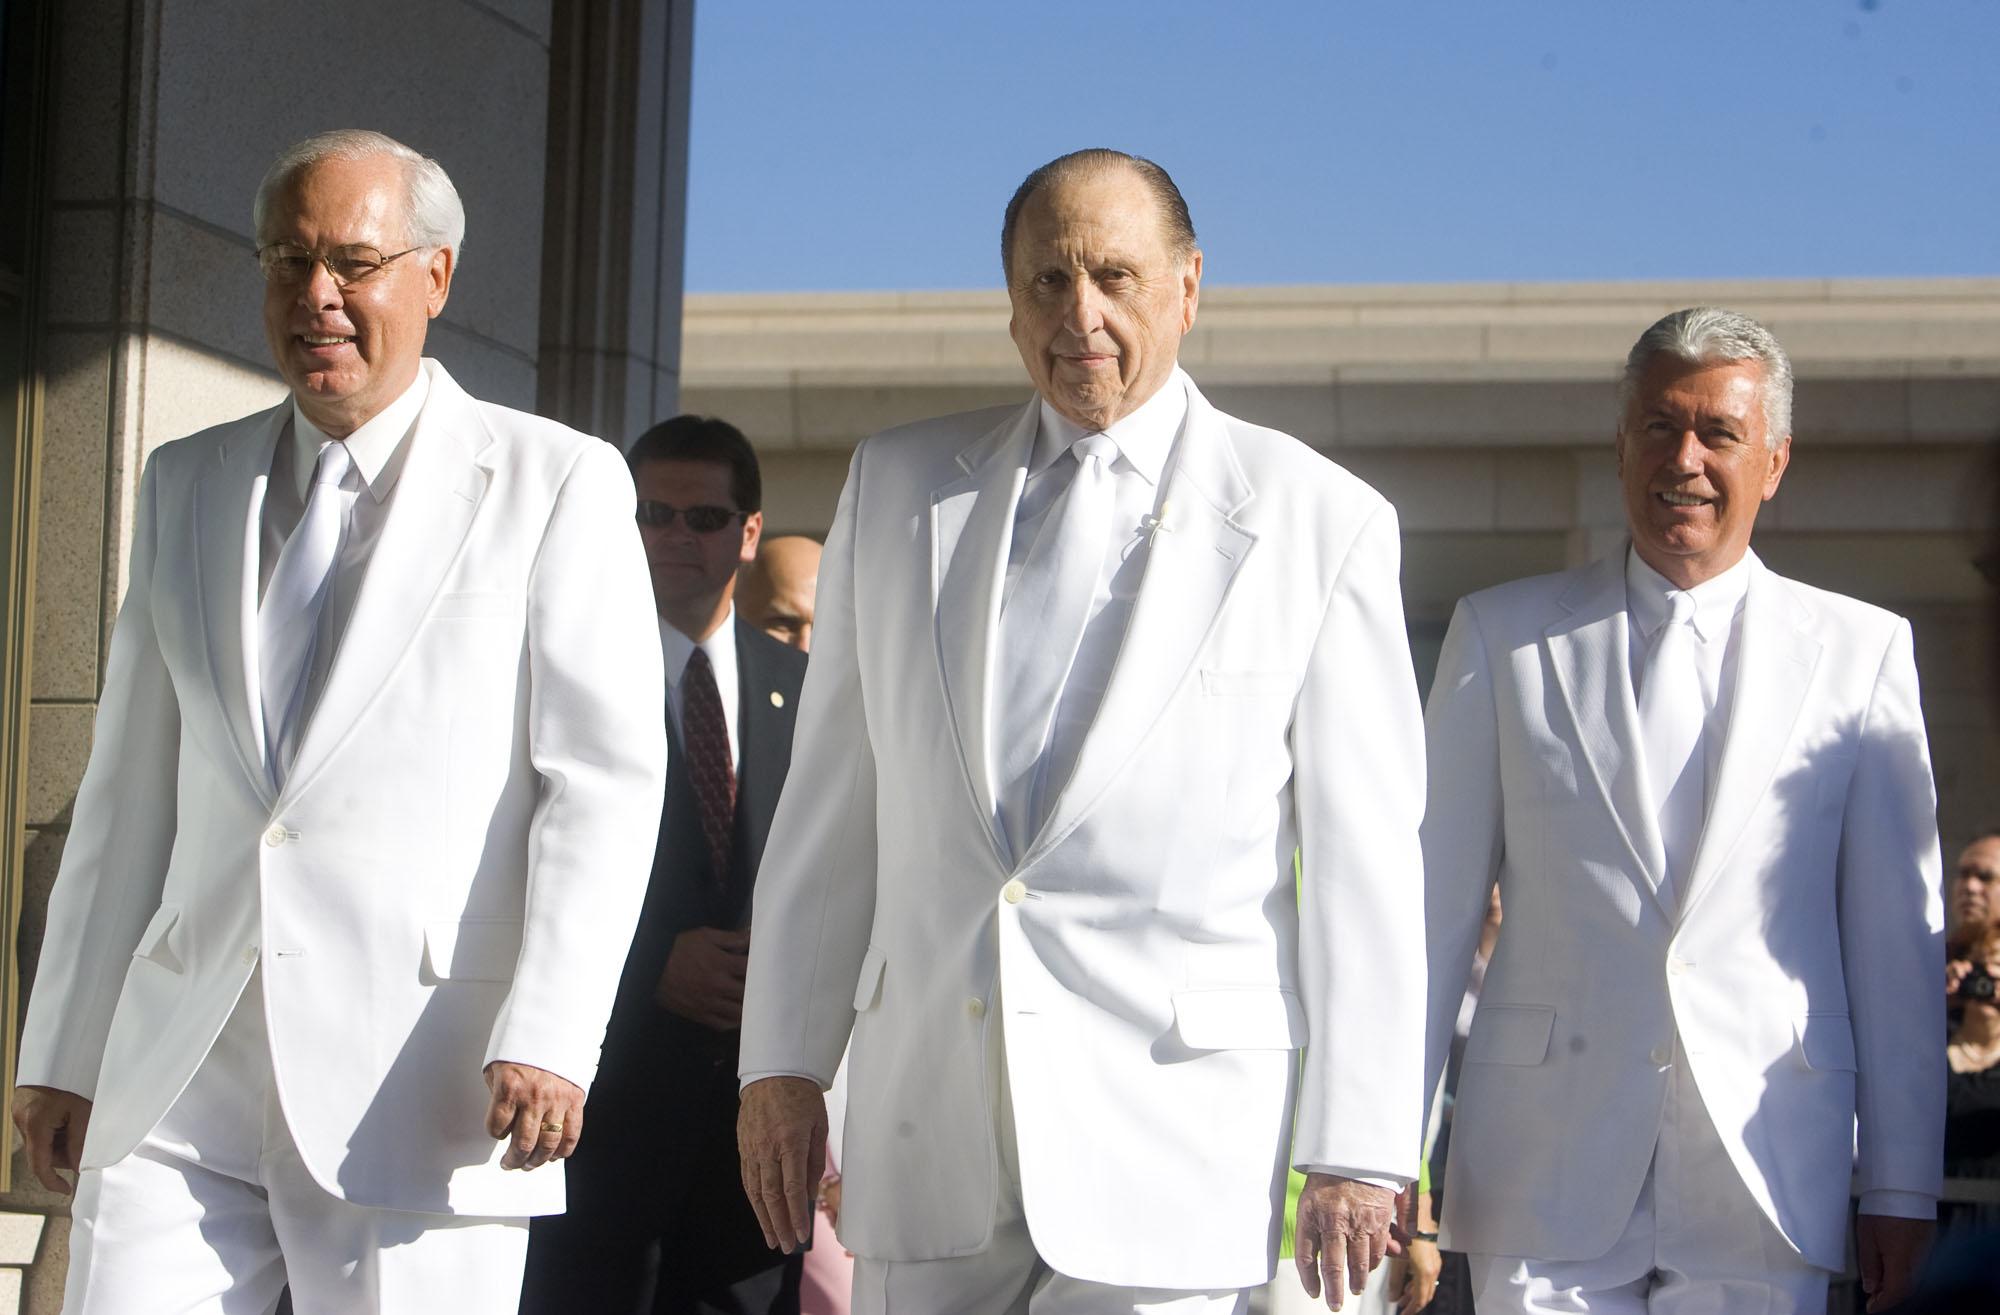 (Al Hartmann  |  The Salt Lake Tribune) Right to left, William R. Walker, President Thomas S. Monson and Dieter F. Uchtdorf presided over the traditional mortar ritual at the first dedication session for the Oquirrh Mountain Temple on Aug. 21, 2009.